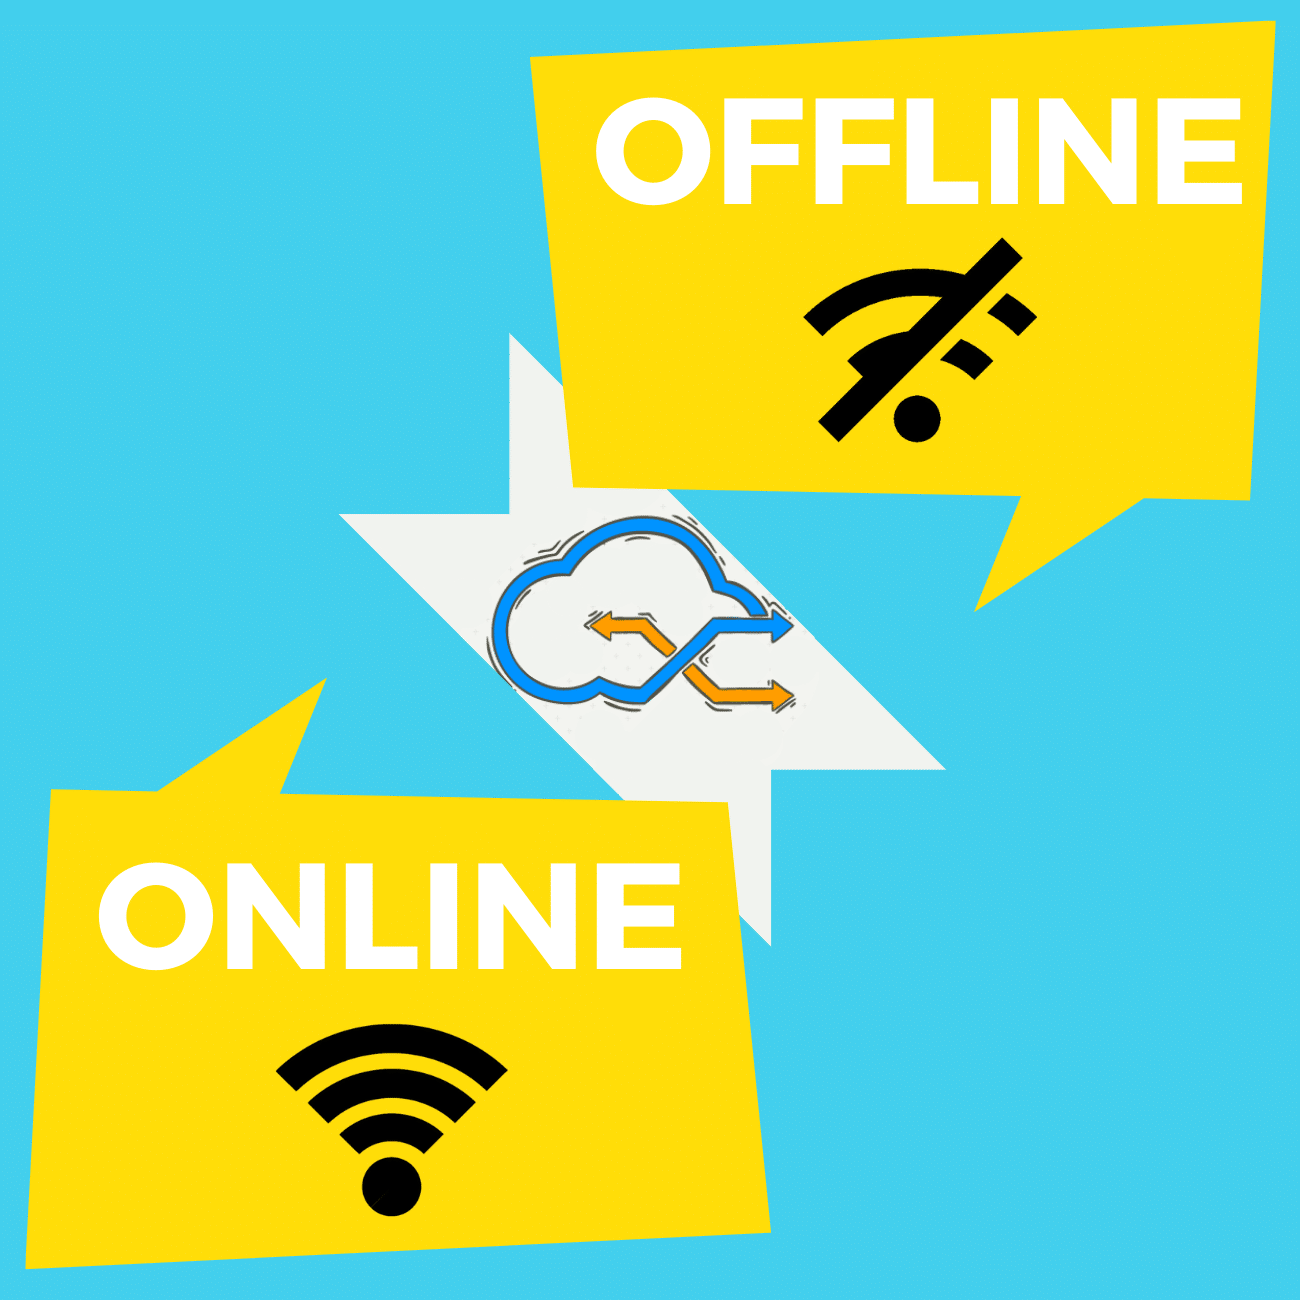 Work online and offline - anywhere anytime